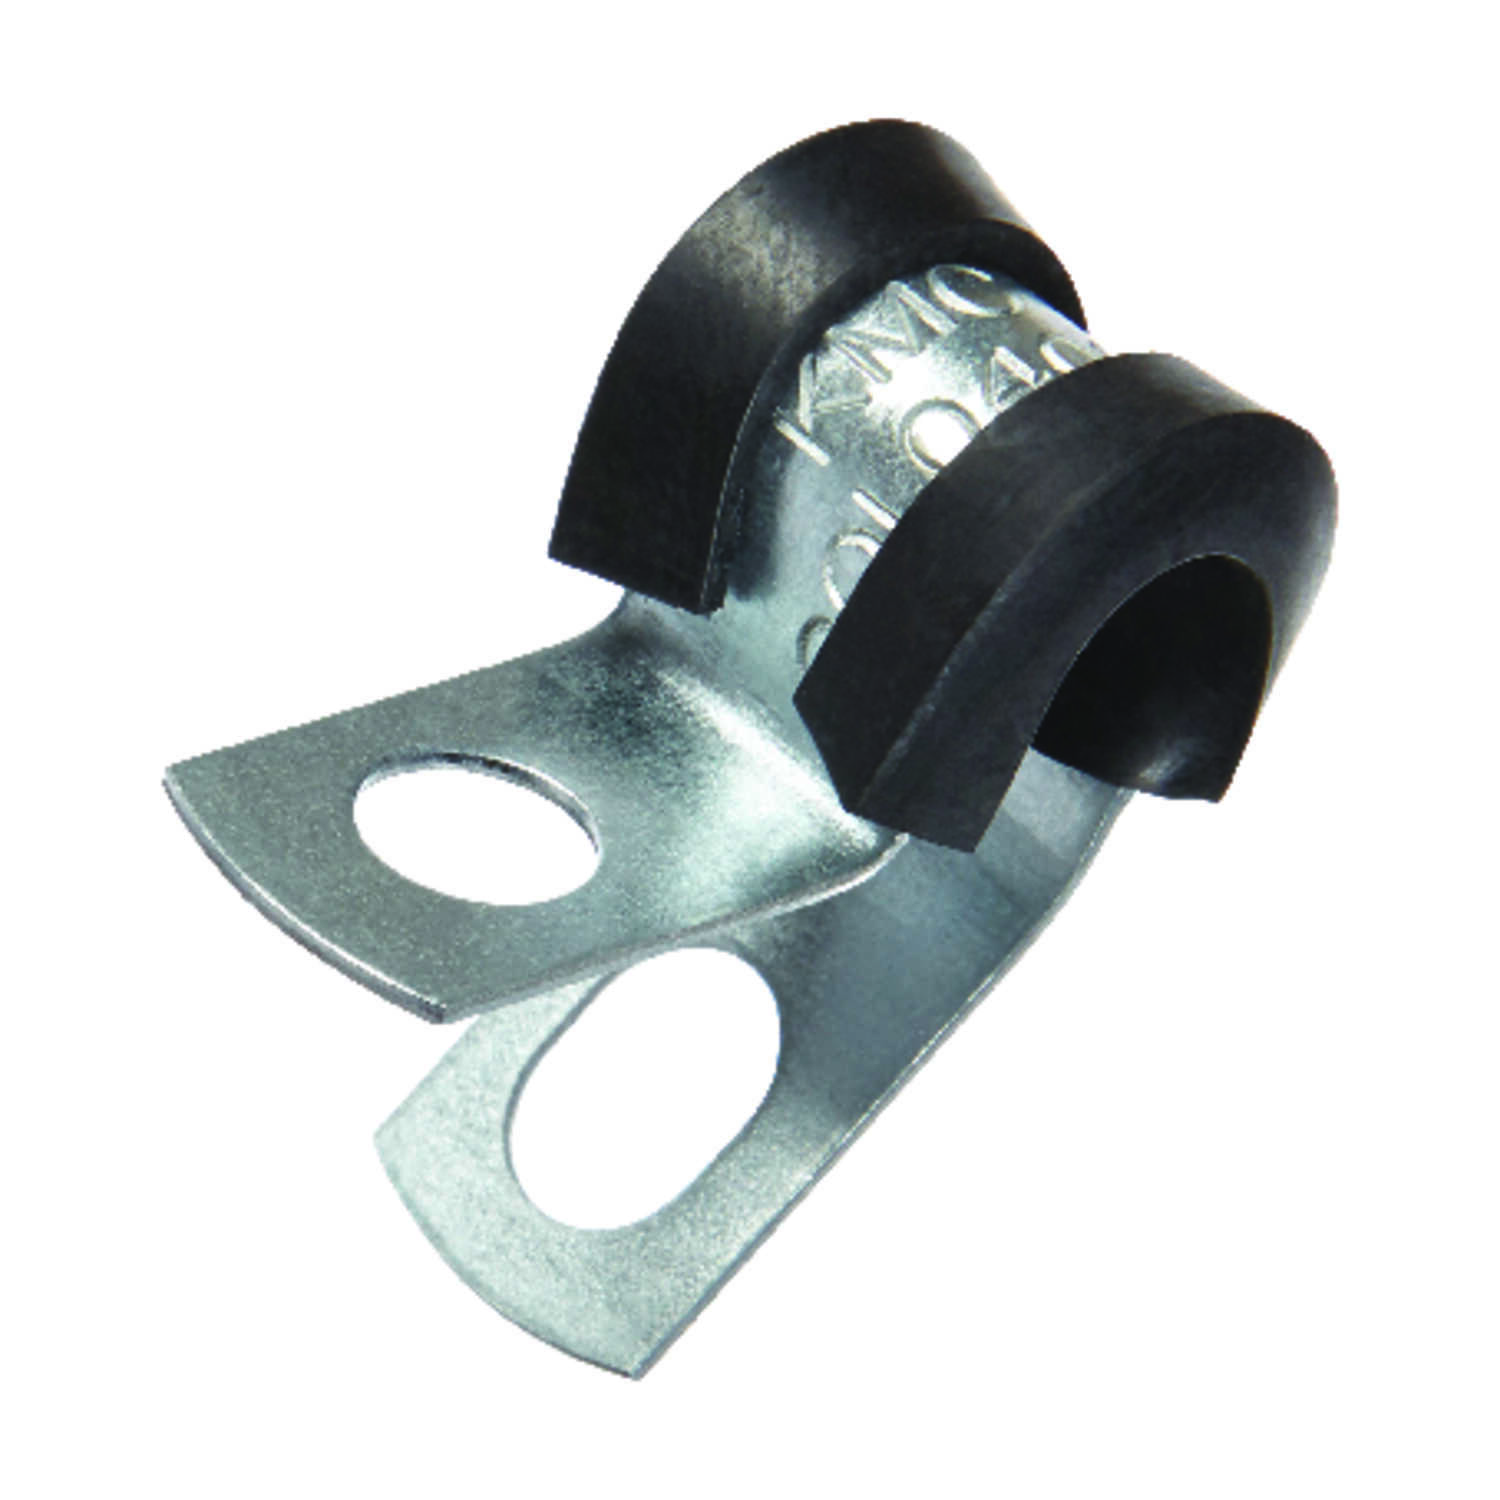 Jandorf  1/4 in. Dia. Steel  Cushion Clamp  2 pk